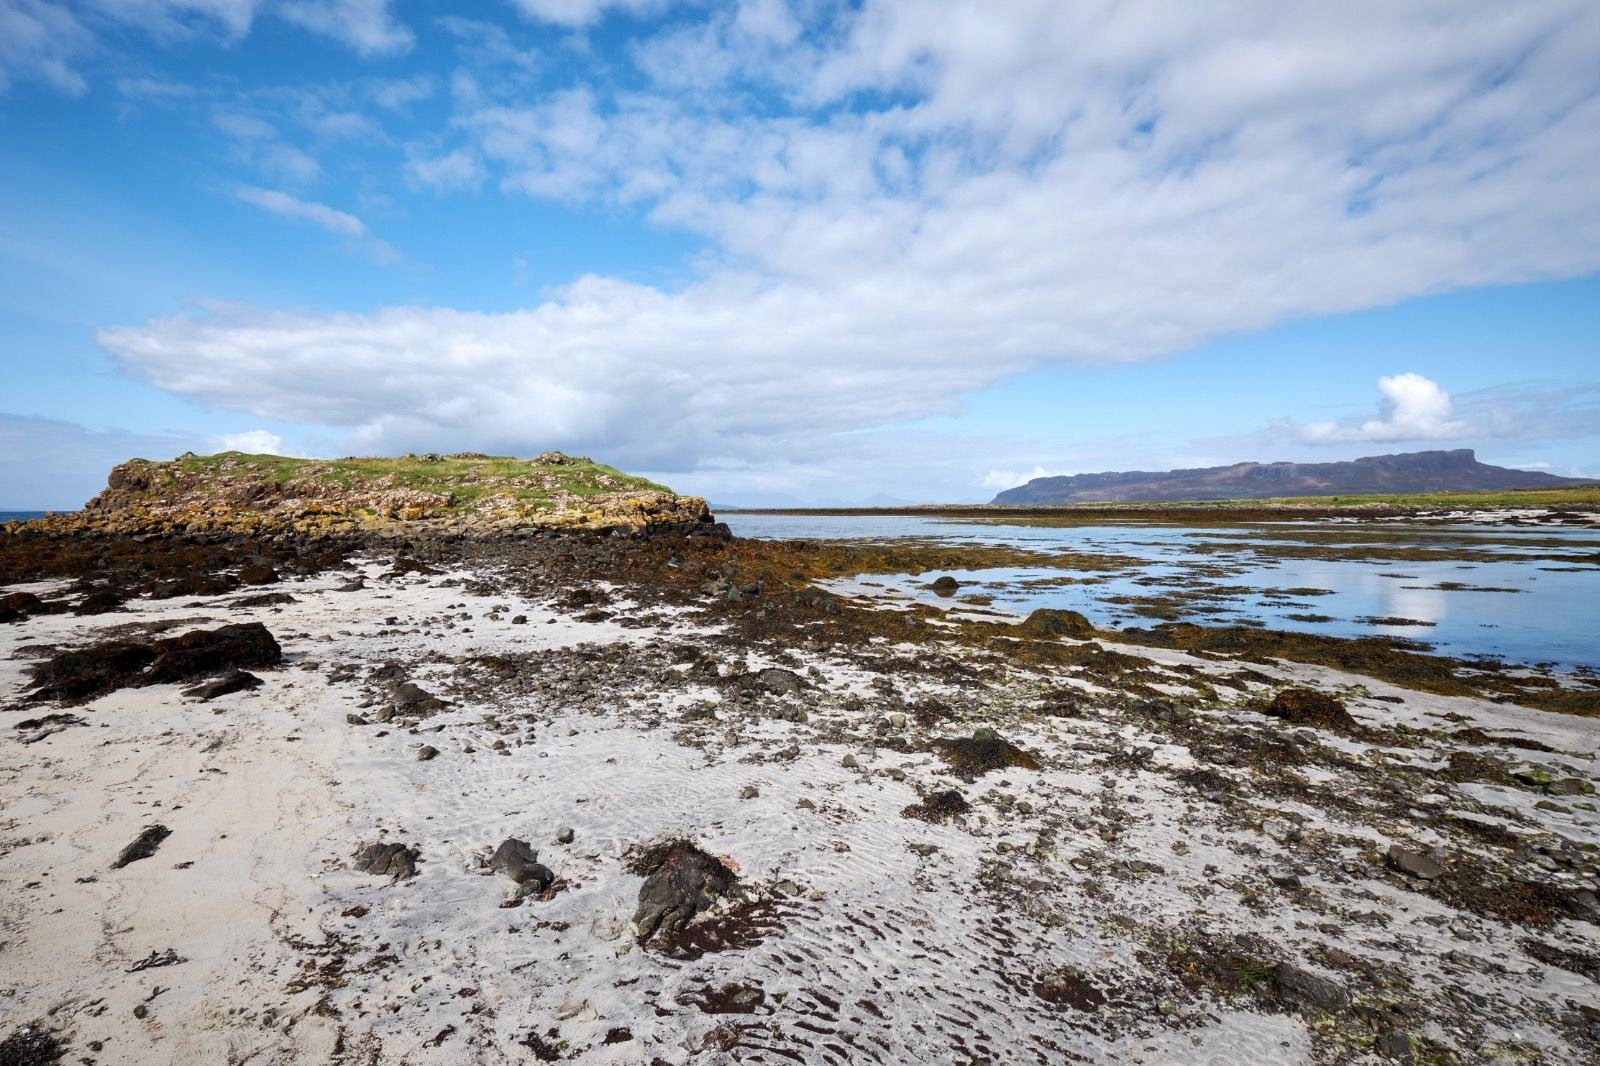 Beach view on the Isle of Muck